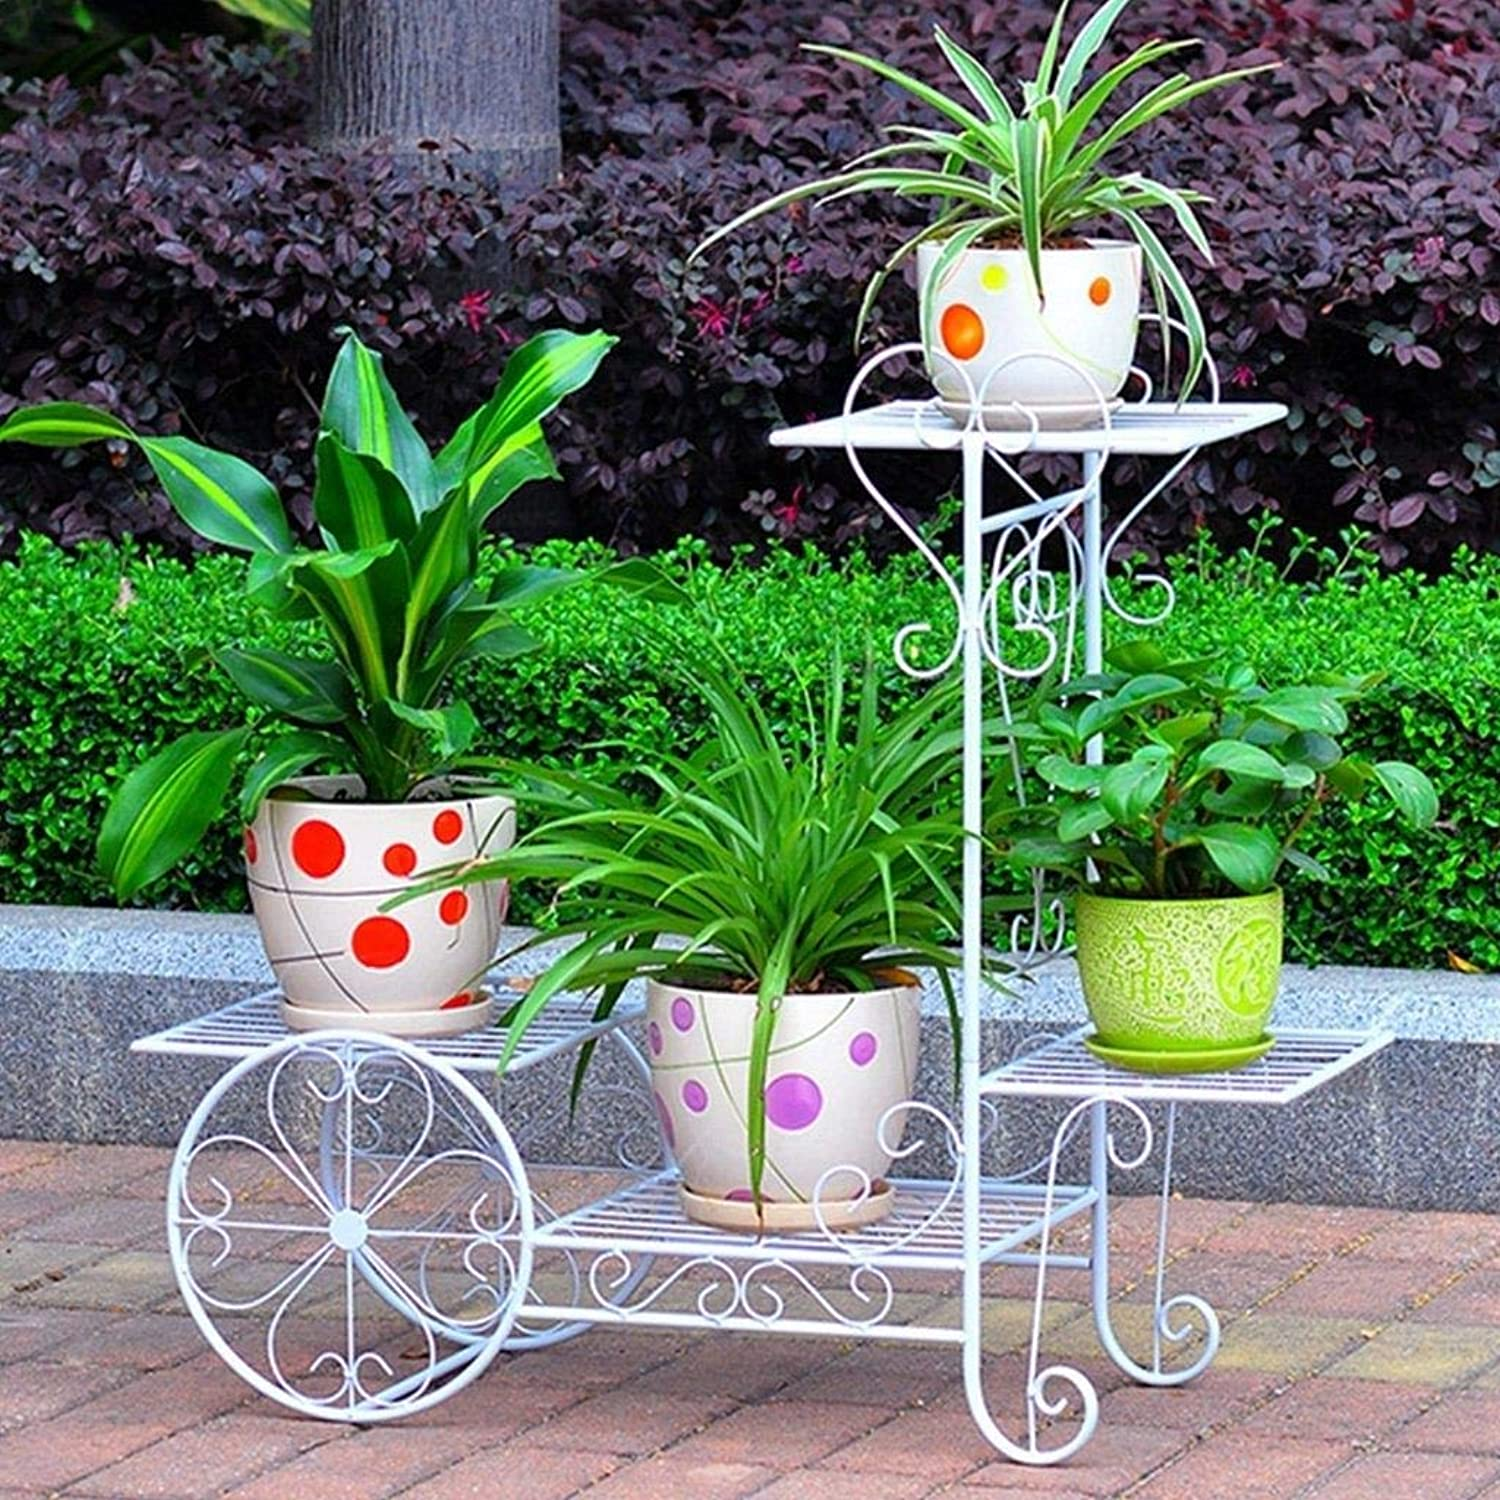 Flower Stand - Metal Floor Type Multi-Layer Flower Pot Plant Display Stand, Multi-Function Storage Rack, Garden Cart Rack, Suitable for Family, Garden, Courtyard (color   White, Size   Large)